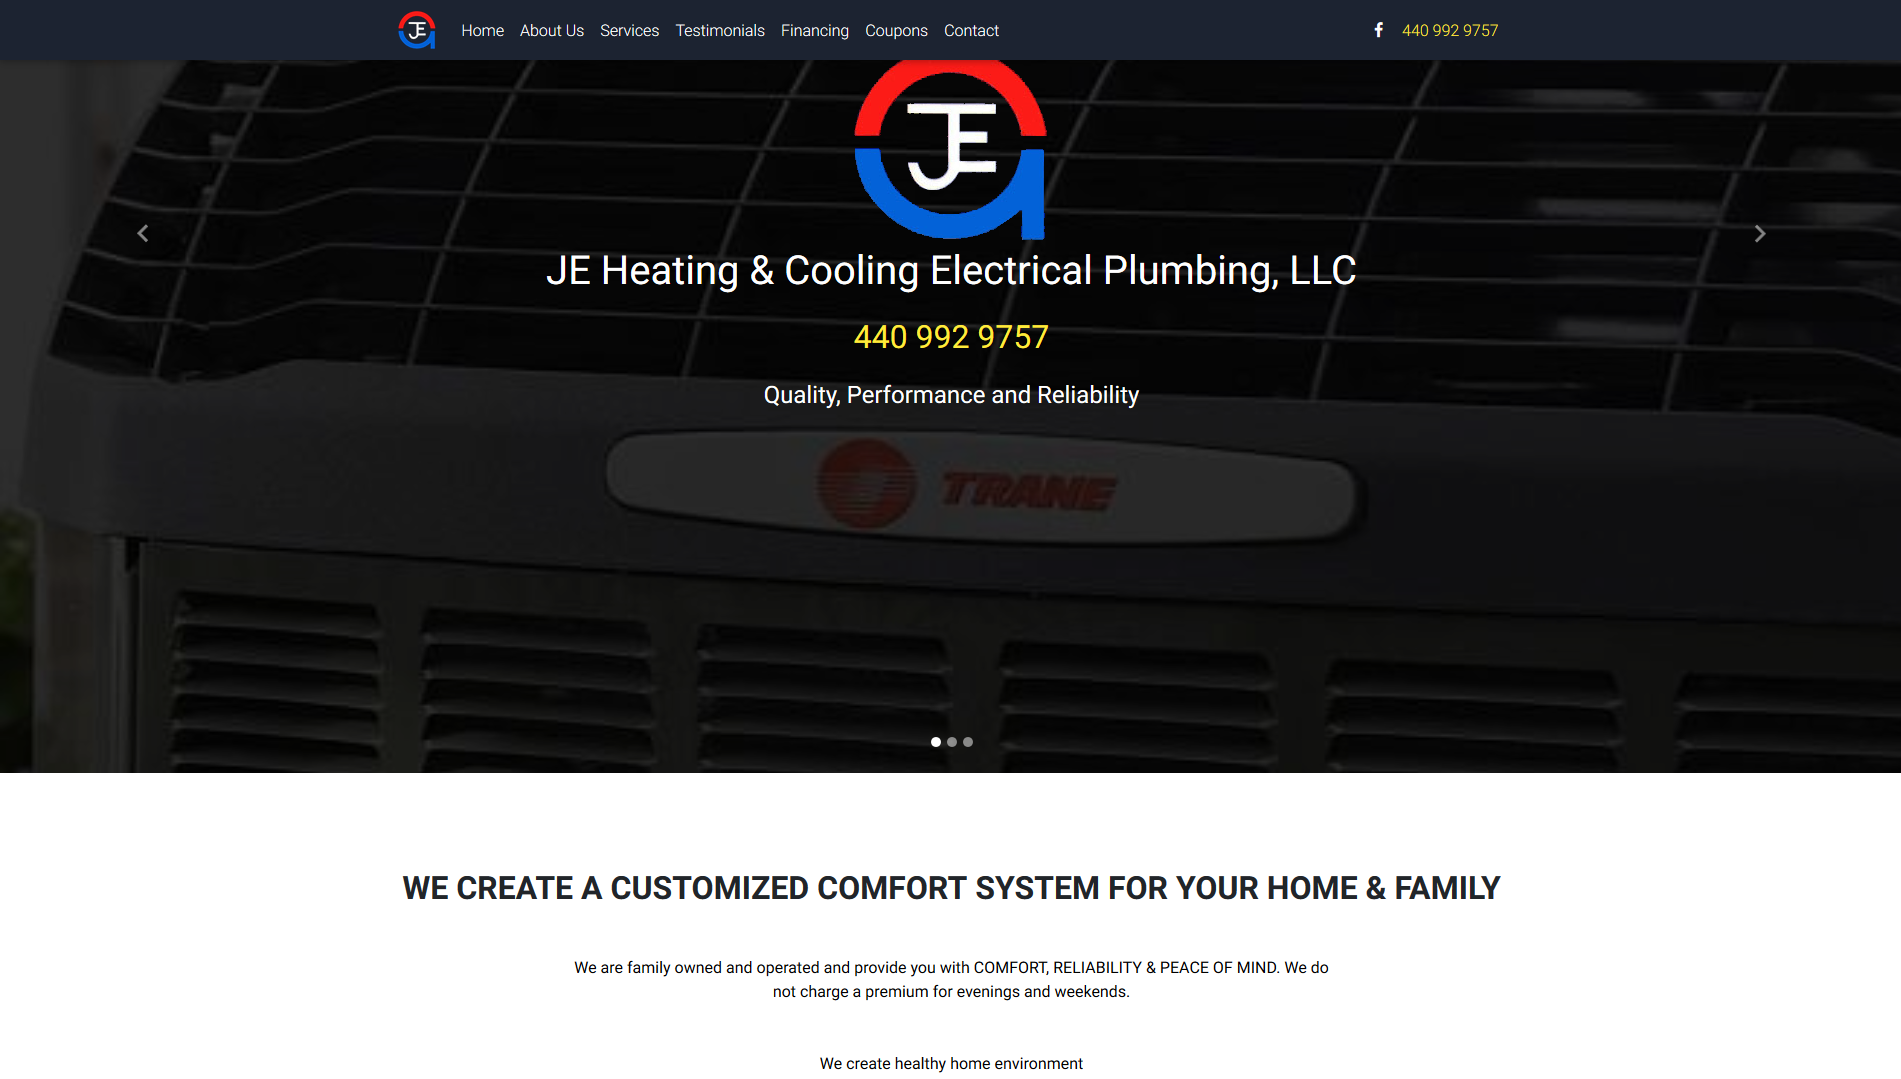 JE Heating and Cooling